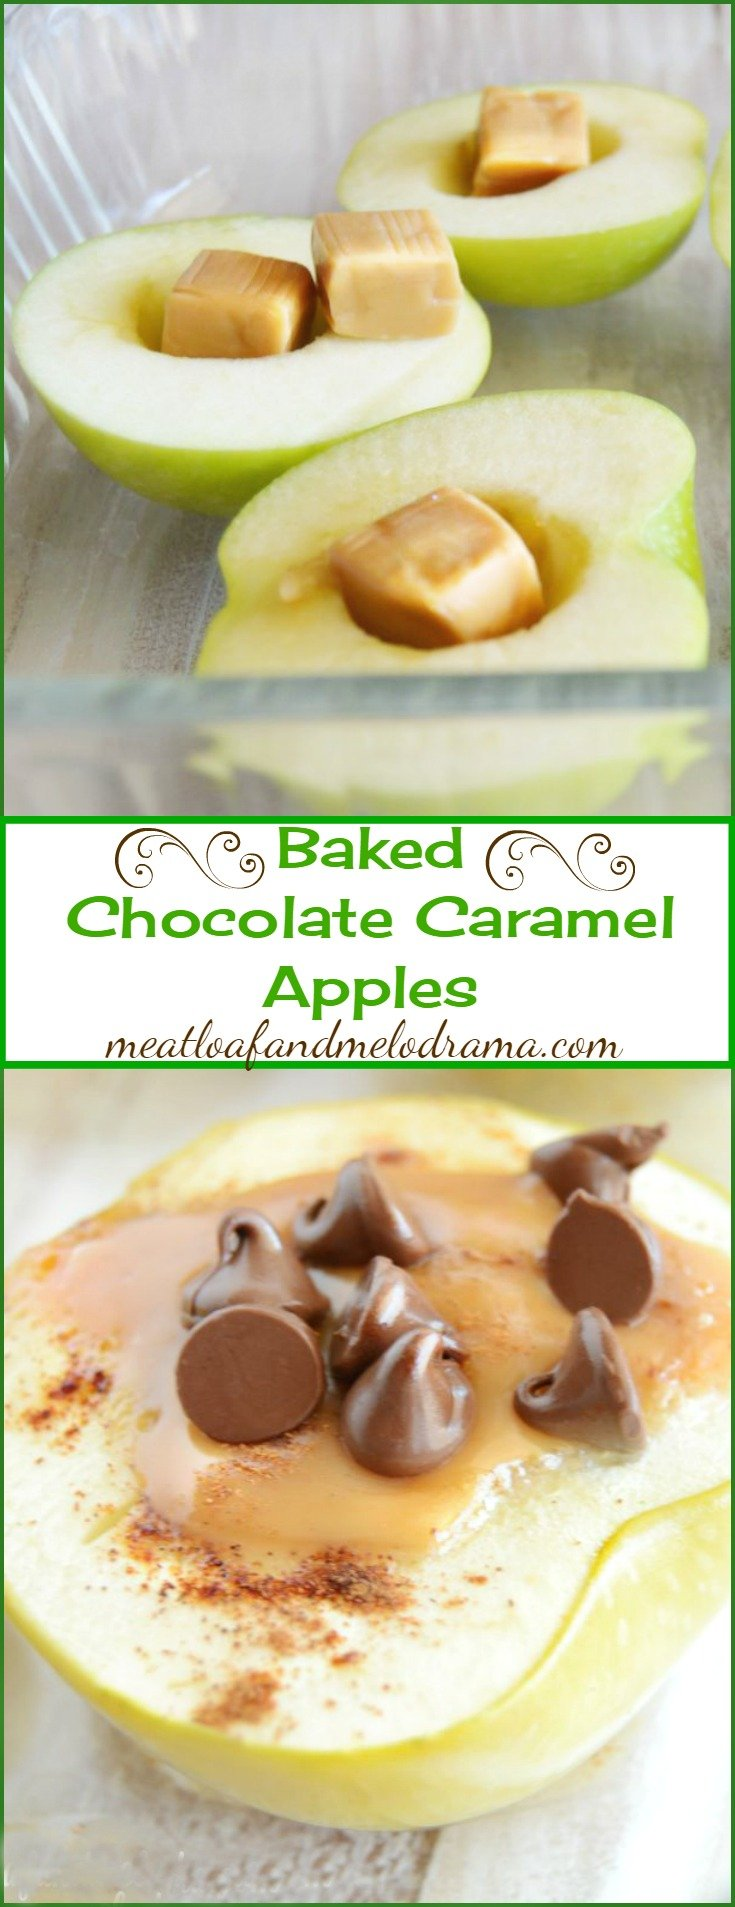 Baked Chocolate Caramel Apples